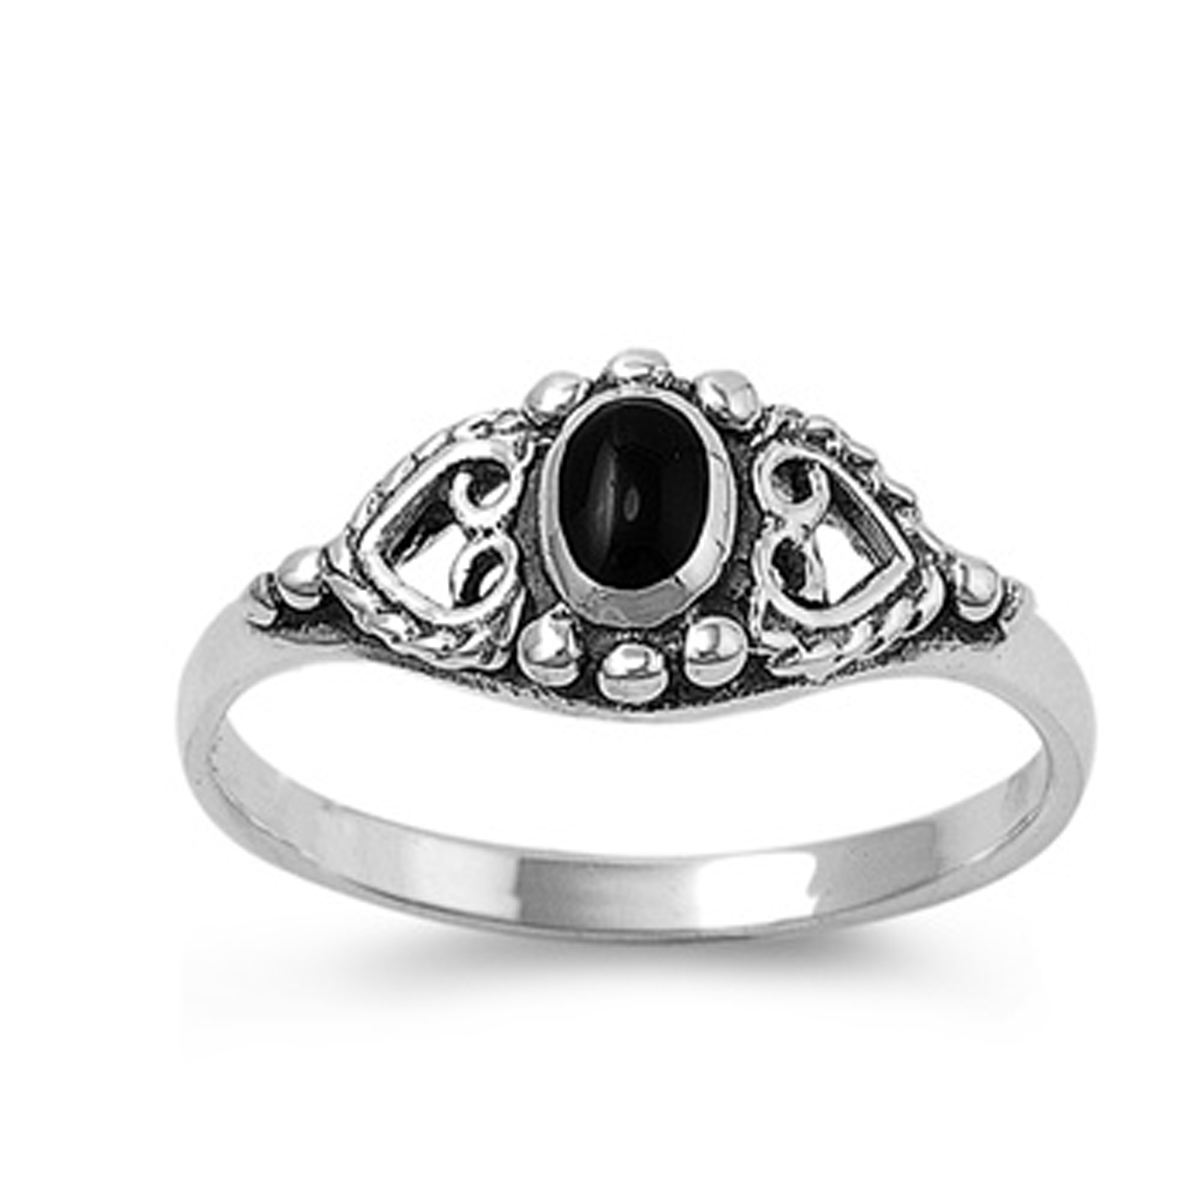 Sterling Silver Women's Simulated Black Onyx Oval Solitaire Heart Ring (Sizes 4-10) (Ring Size 5)